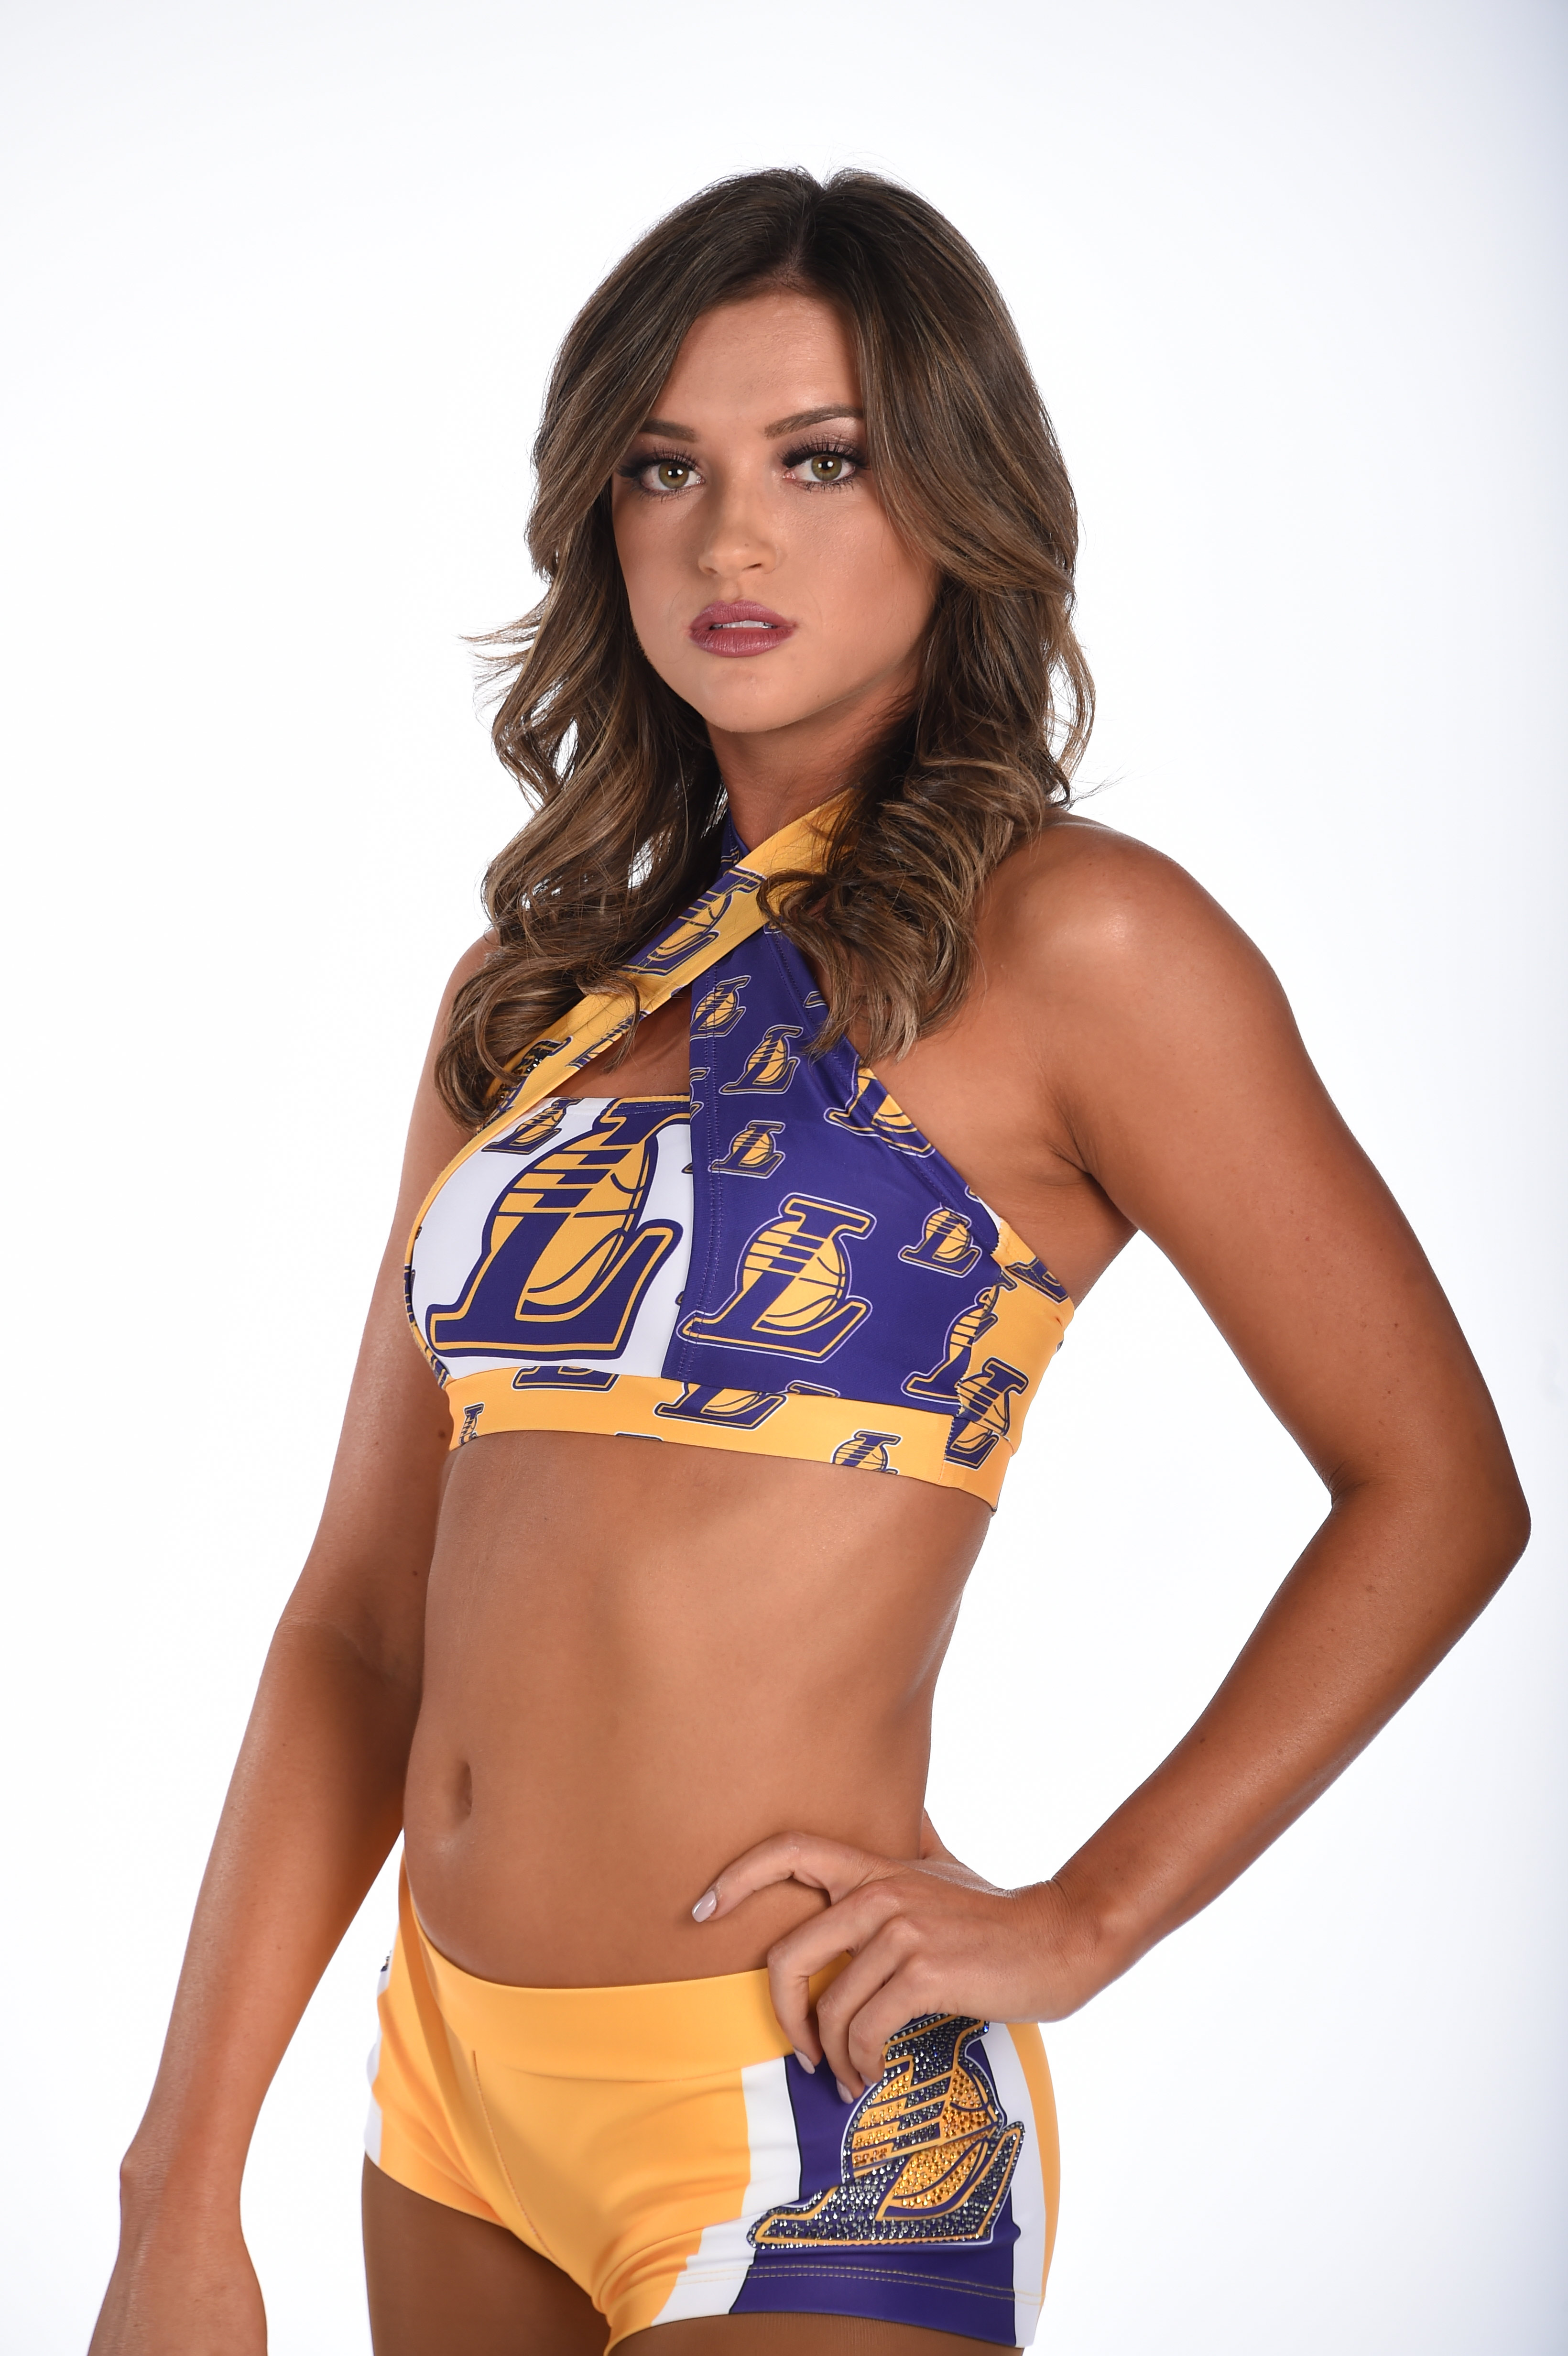 Laker Girls - Sammy